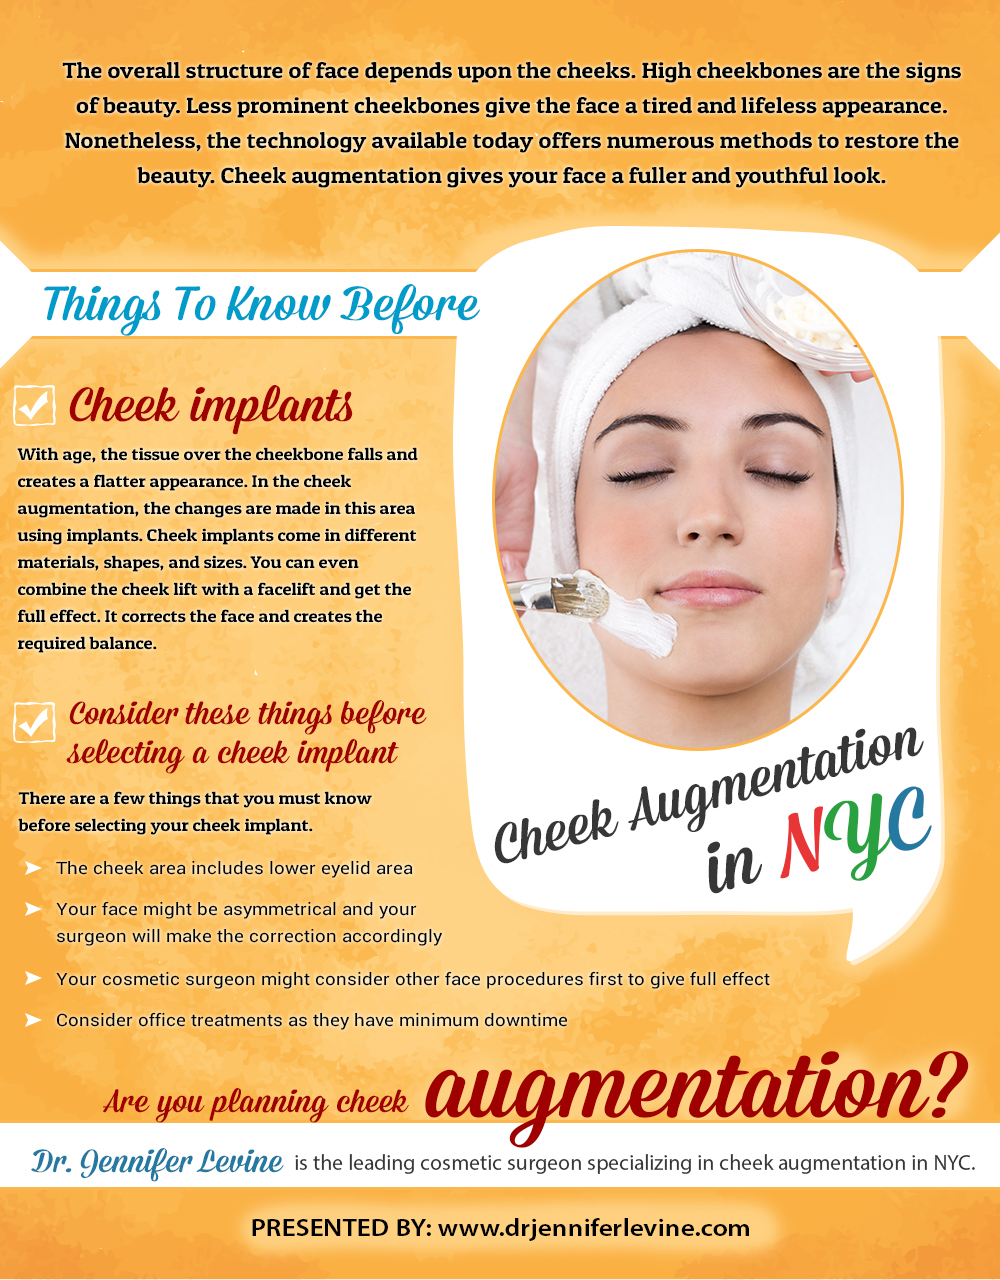 Cheek Augmentation in NYC